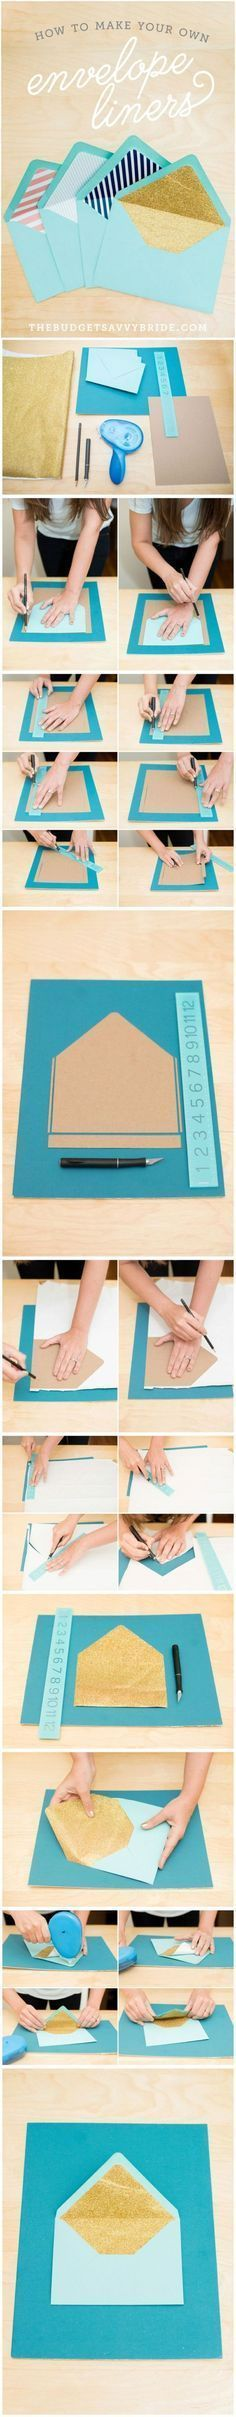 Diy Envelope Liners Template  Card Making Ideas    Diy